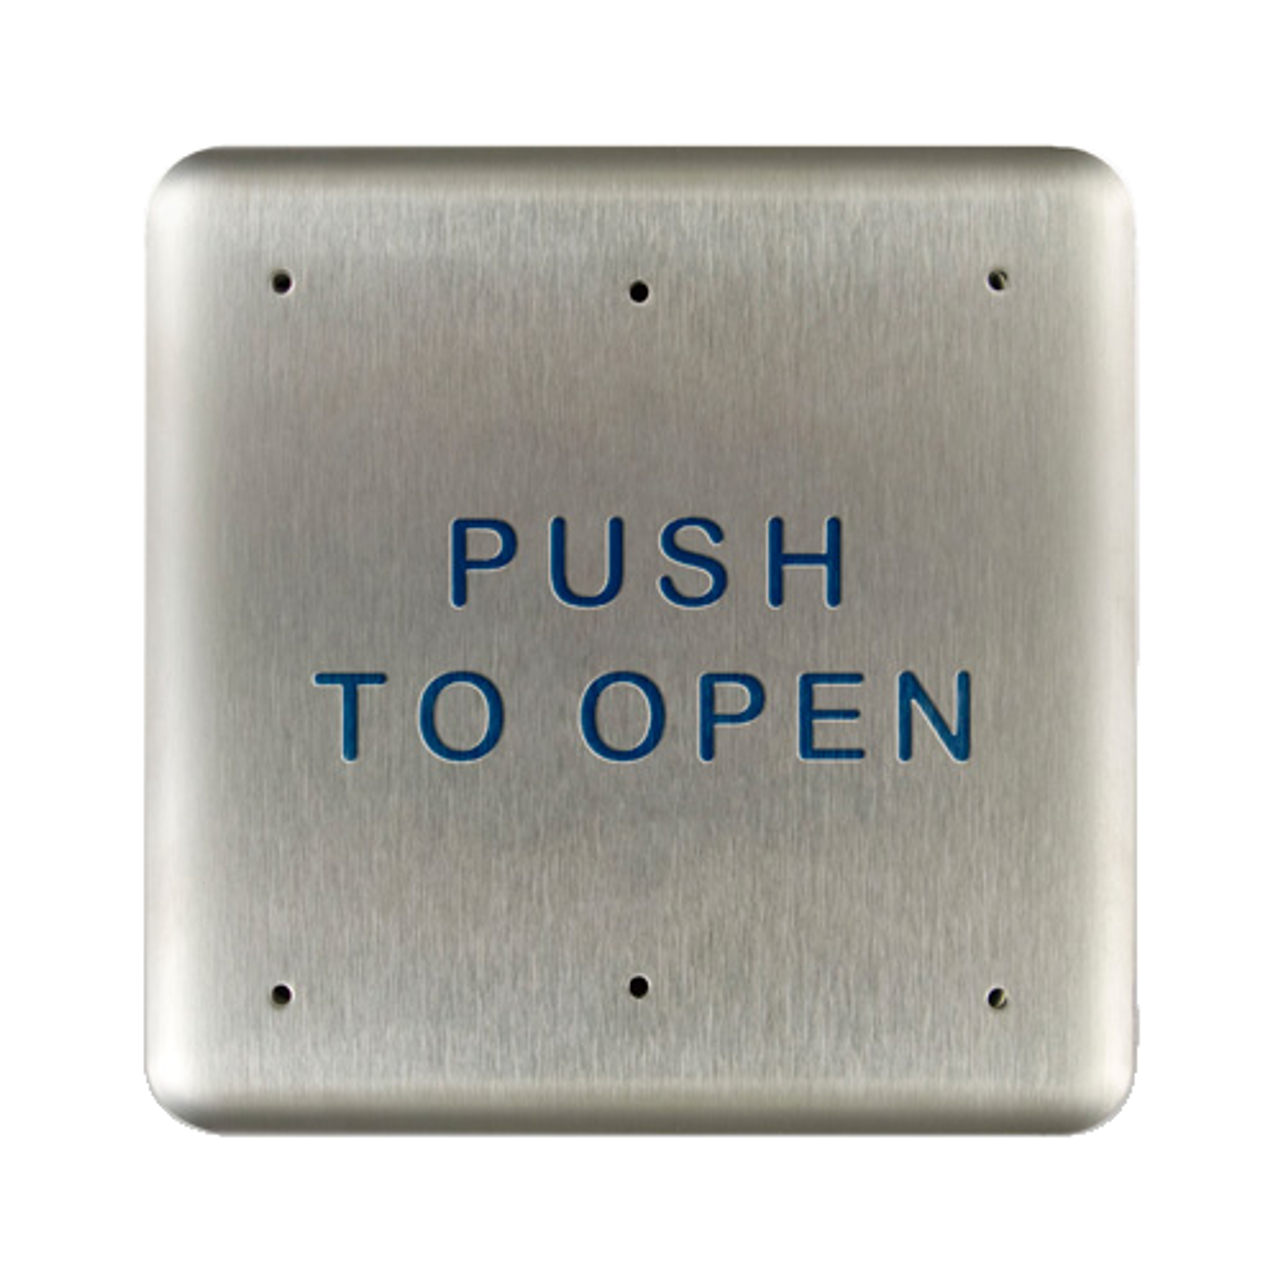 Bea 10pbs 4 75 Quot Push To Open Square Push Plate